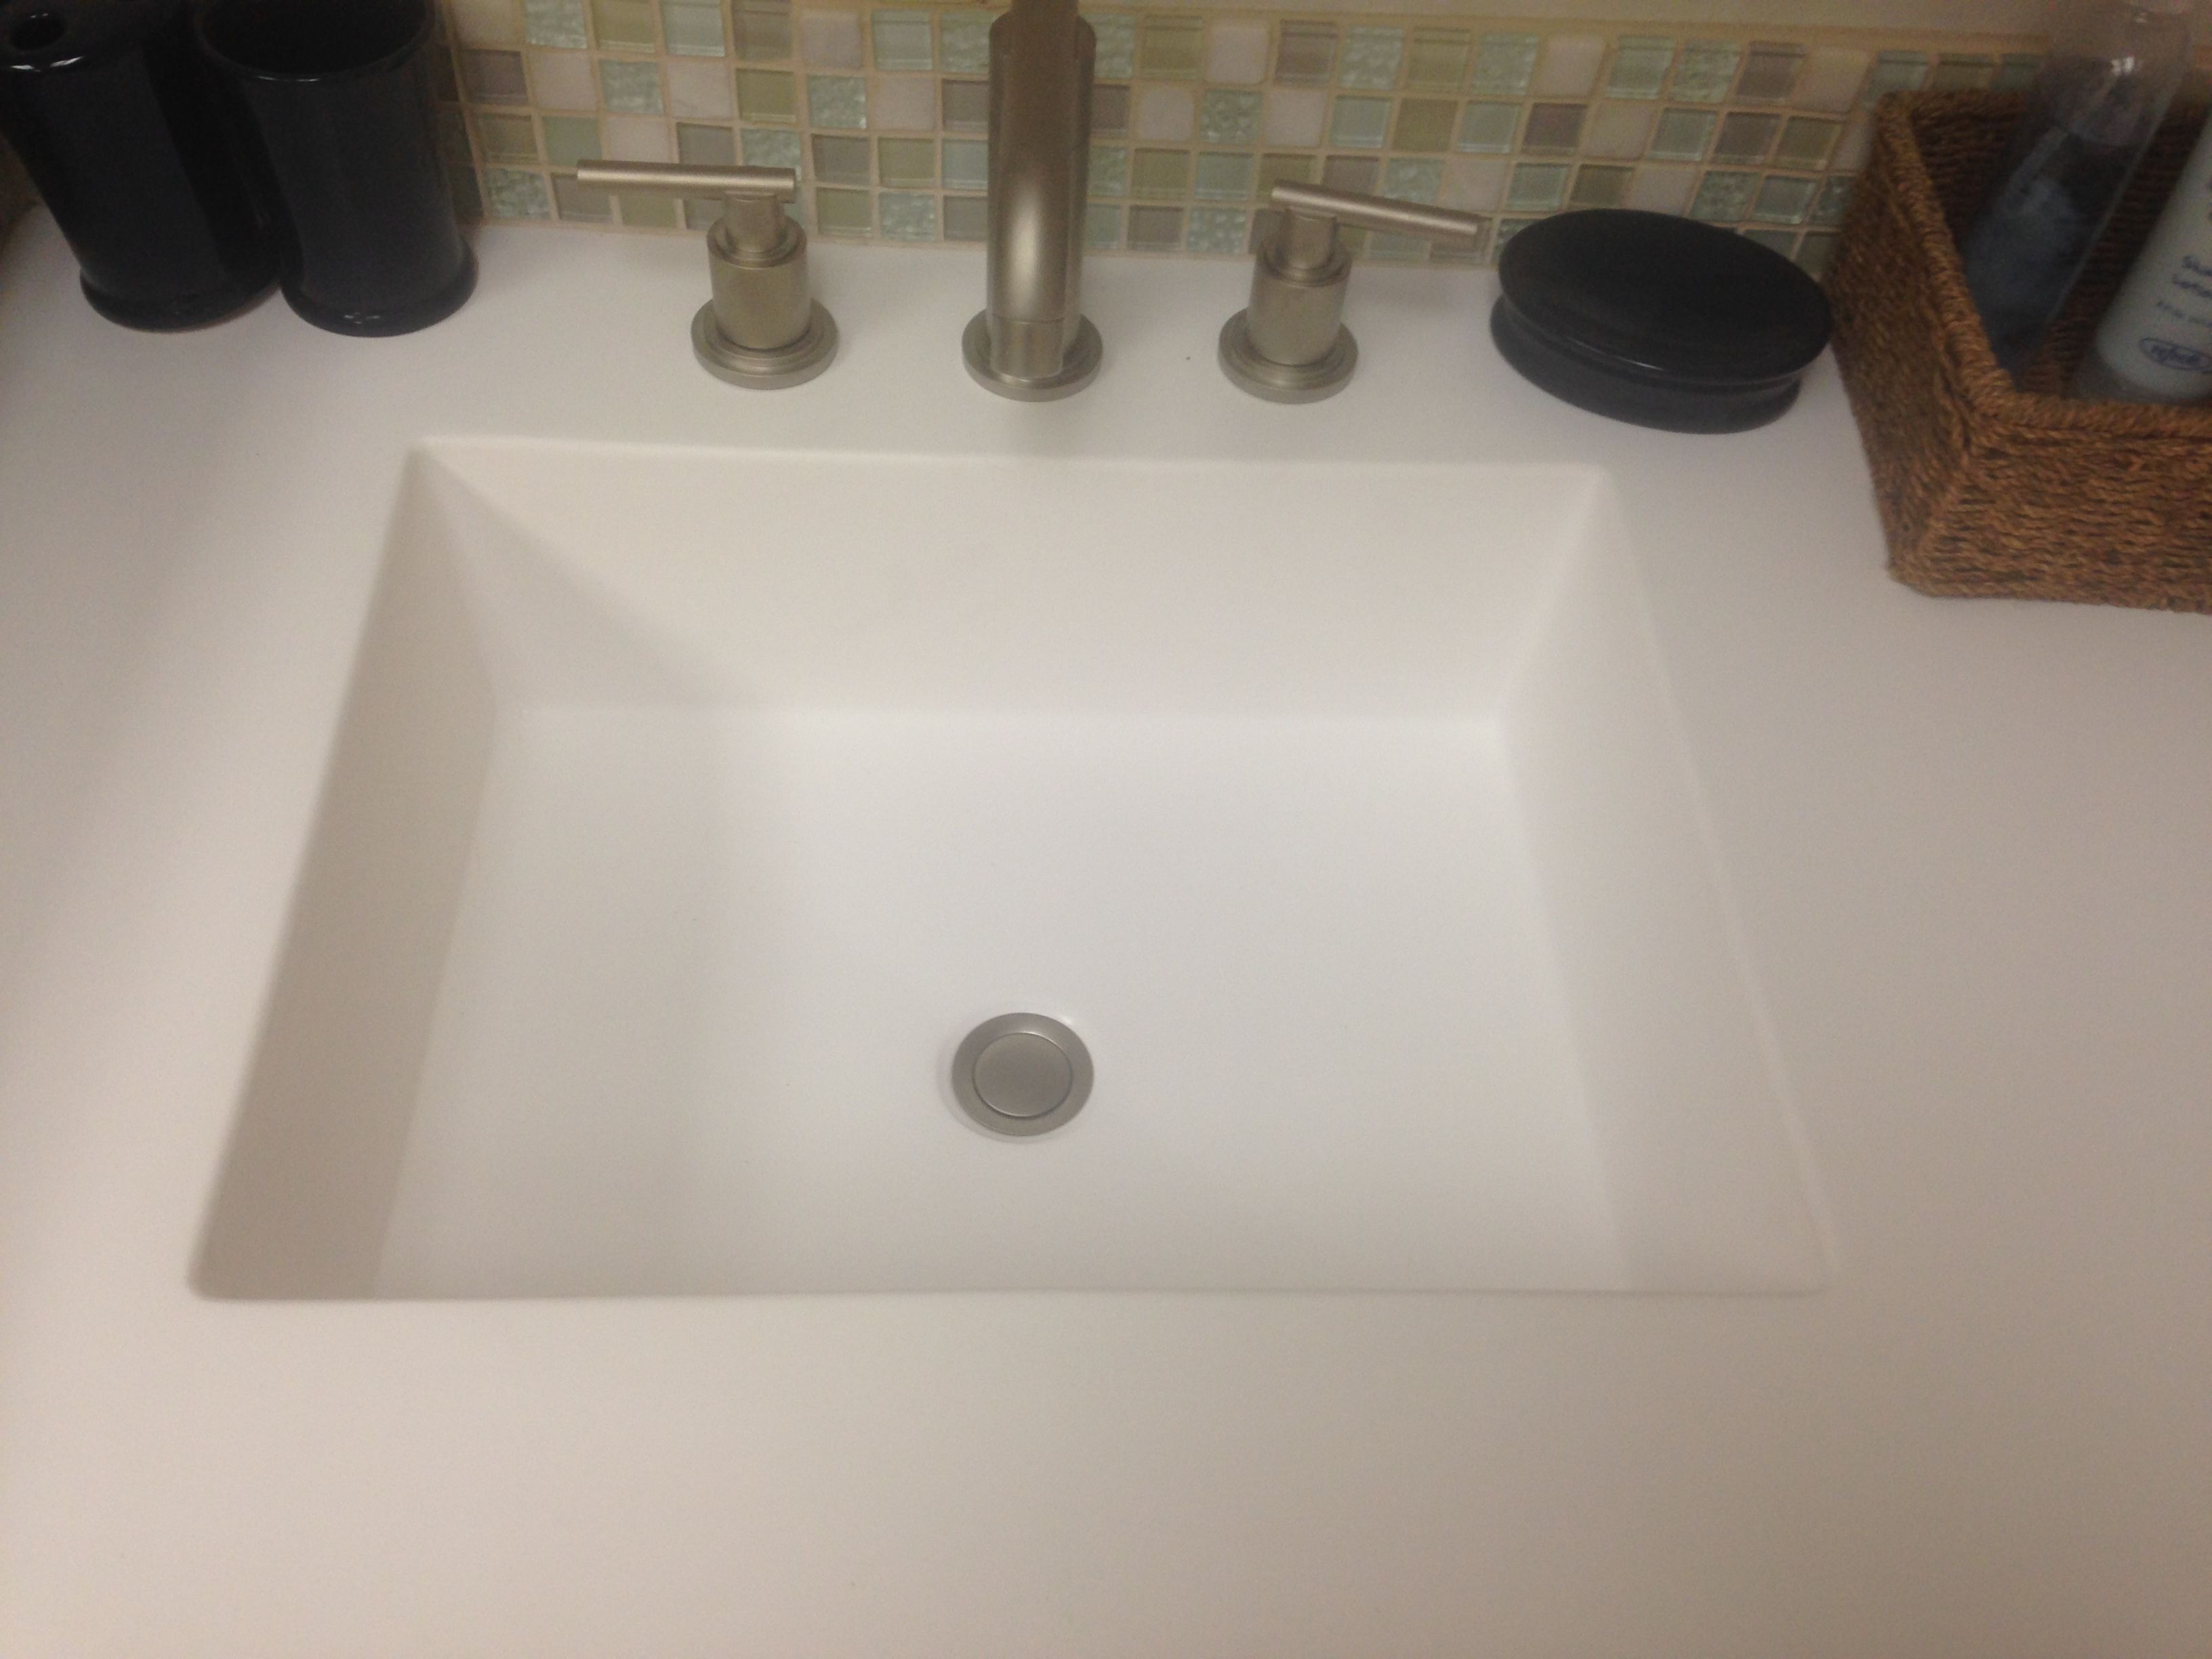 cultured marble bathroom sinks. bathroom vanity tops cultured marble sinks n